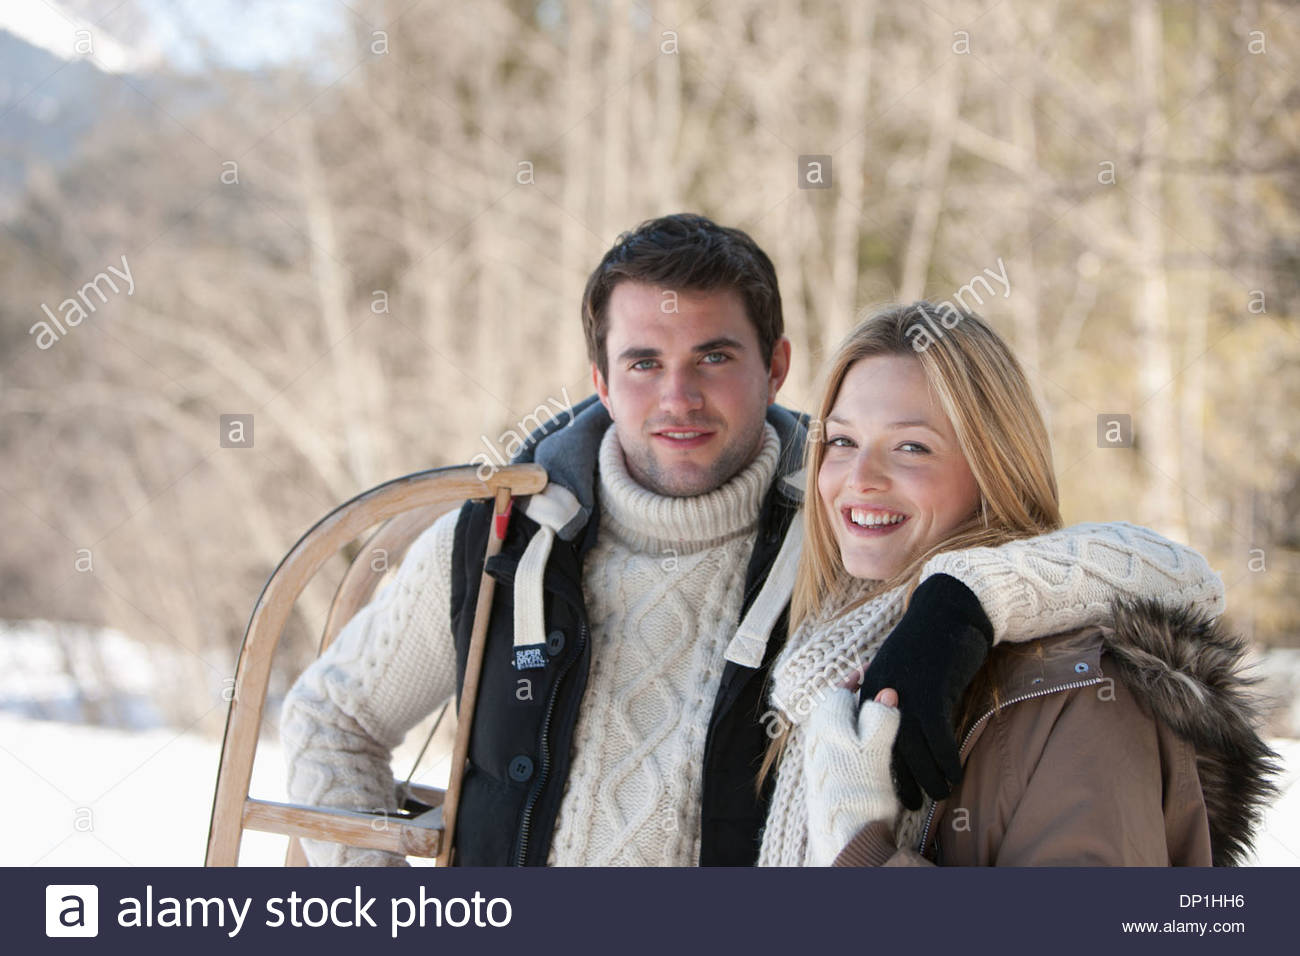 Portrait of smiling couple with sled in woods - Stock Image